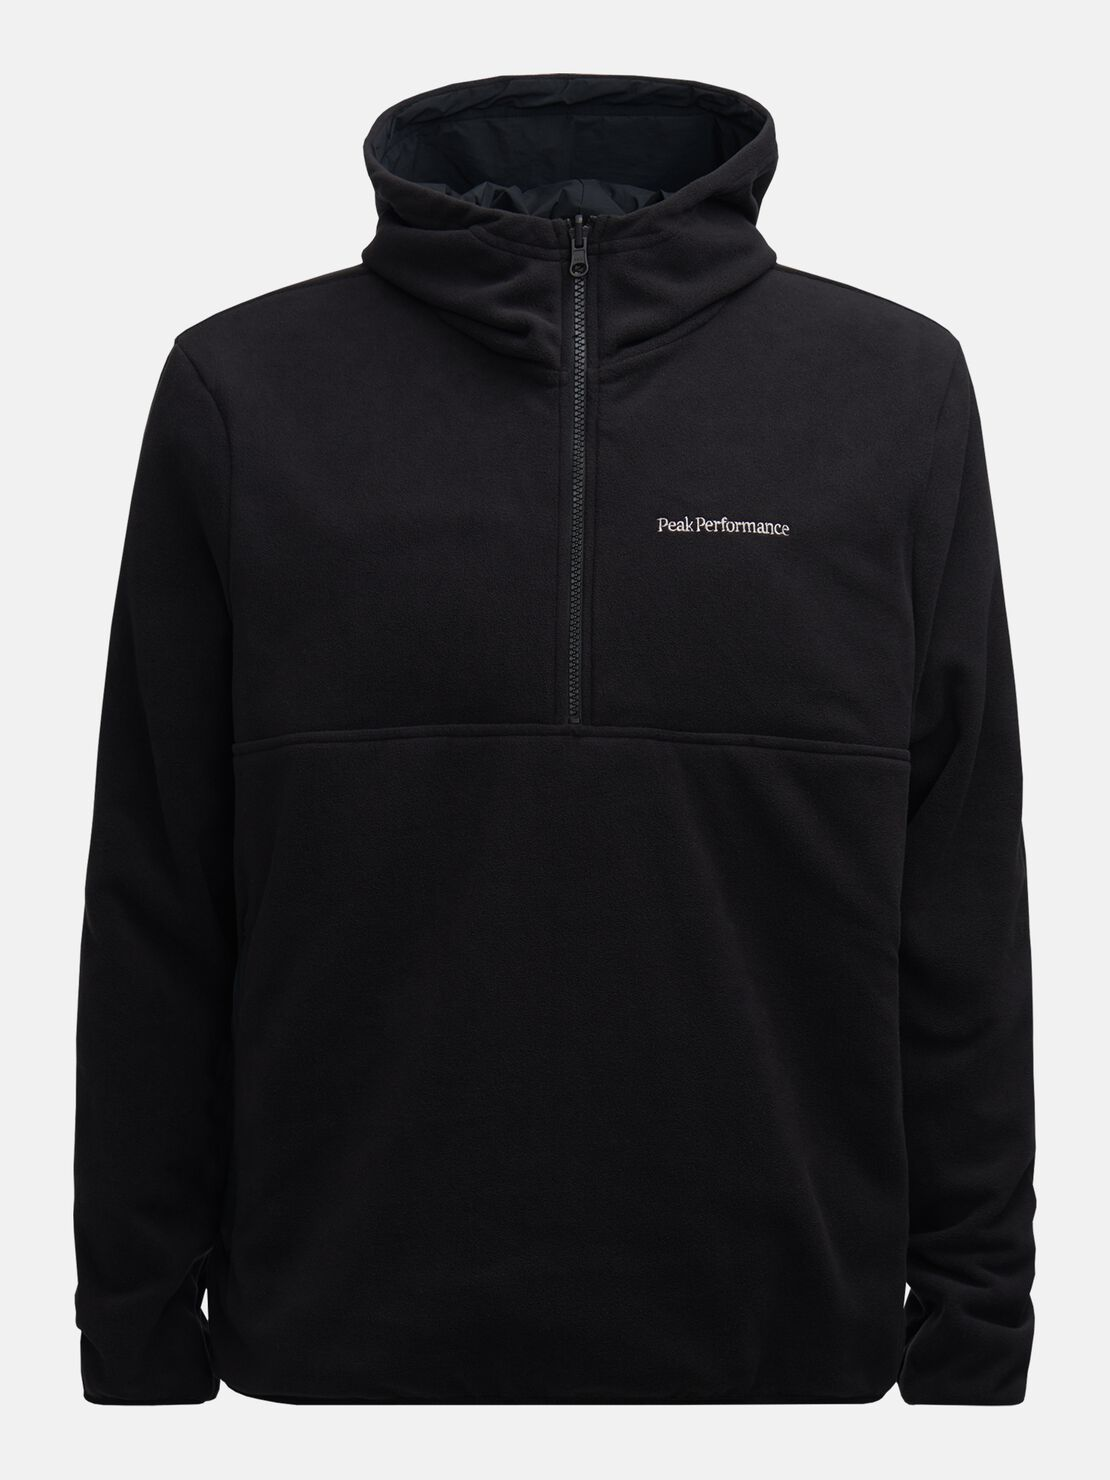 Tech Soft Reverse Hoody by Peak Performance